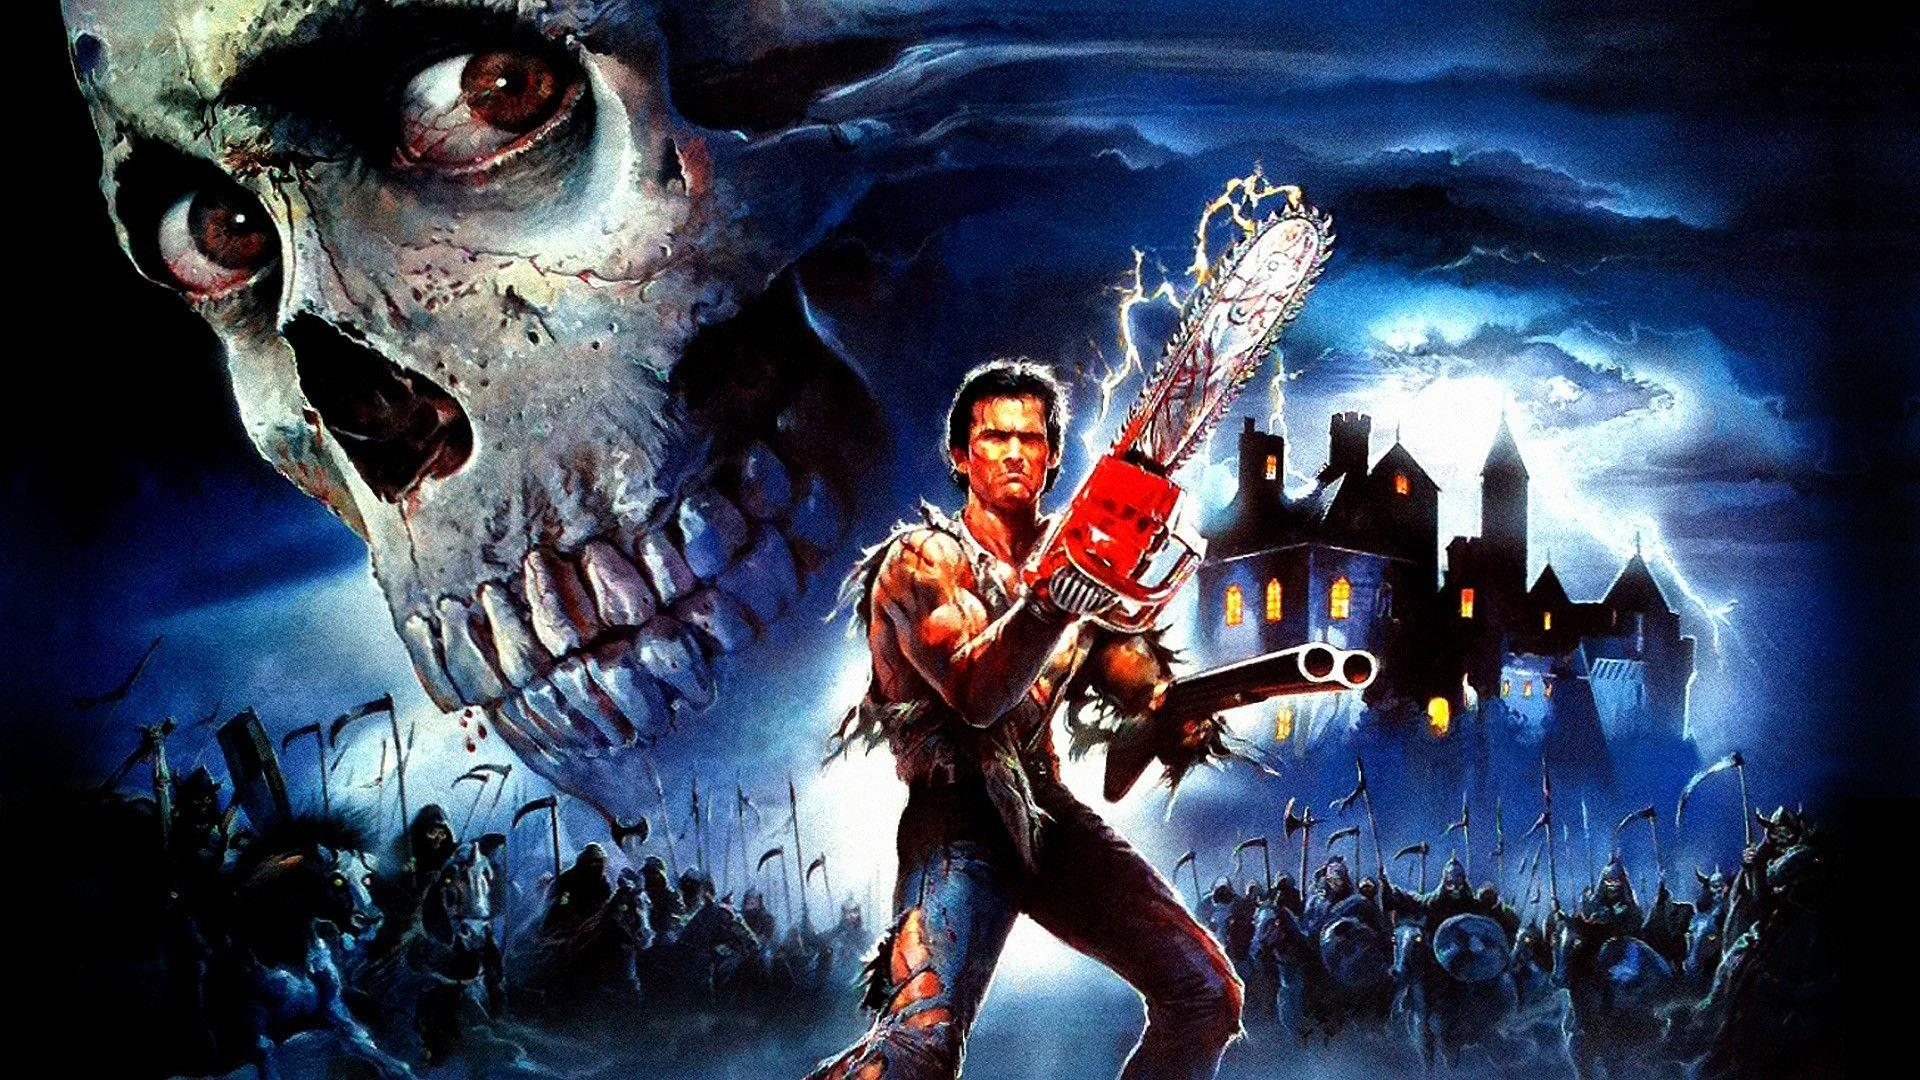 army of darkness 1992 full movie download